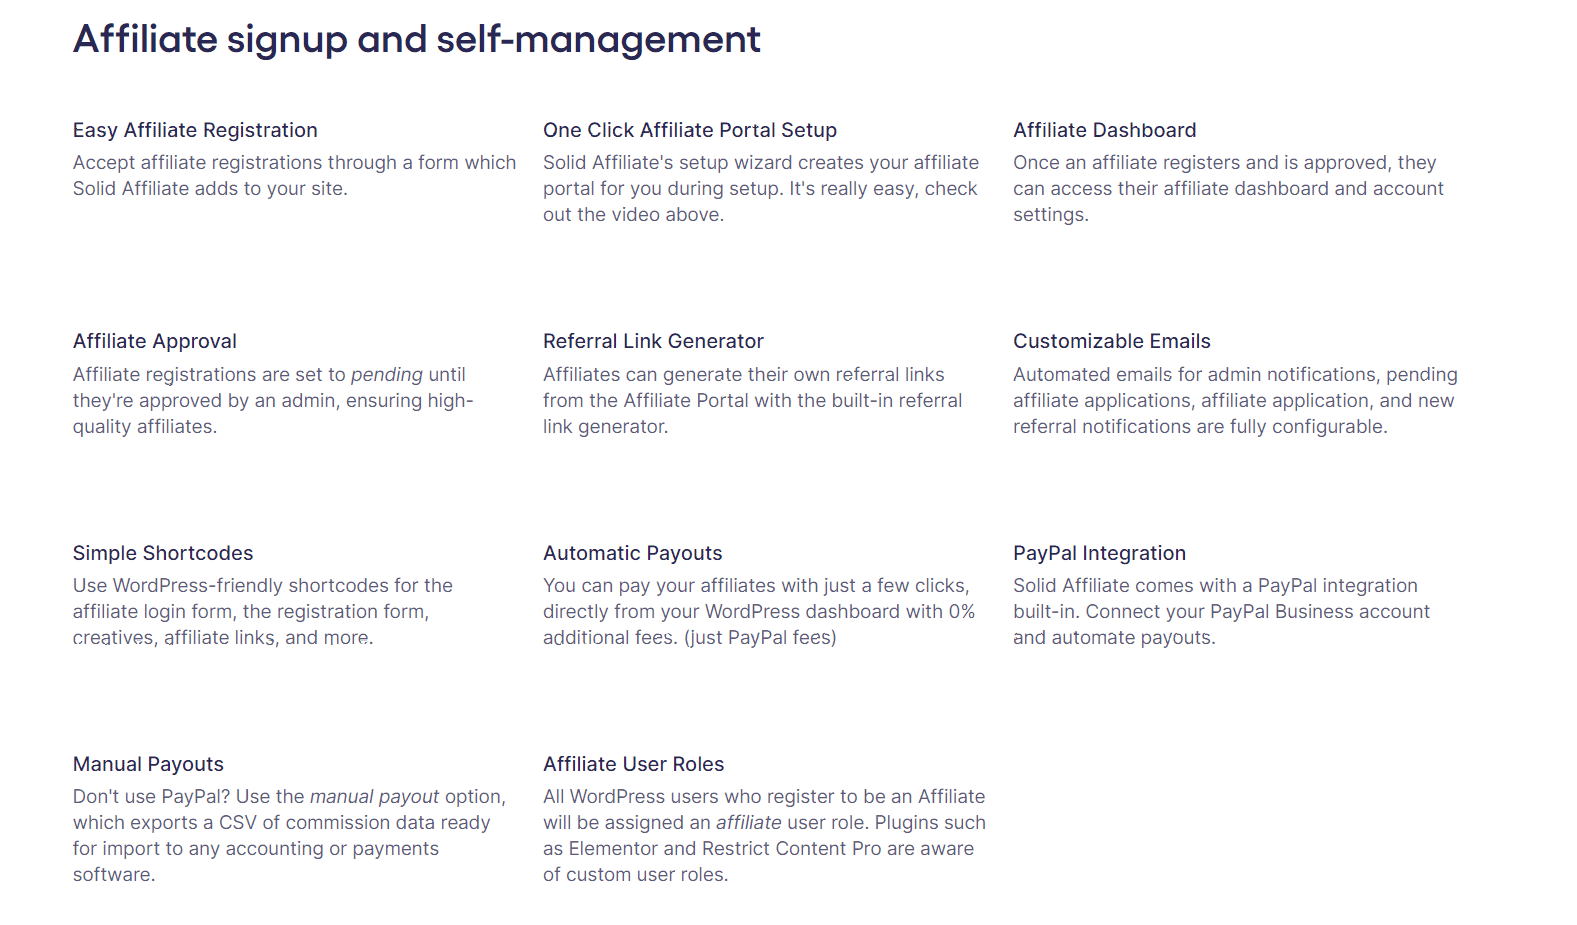 Affiliate signup and self-management